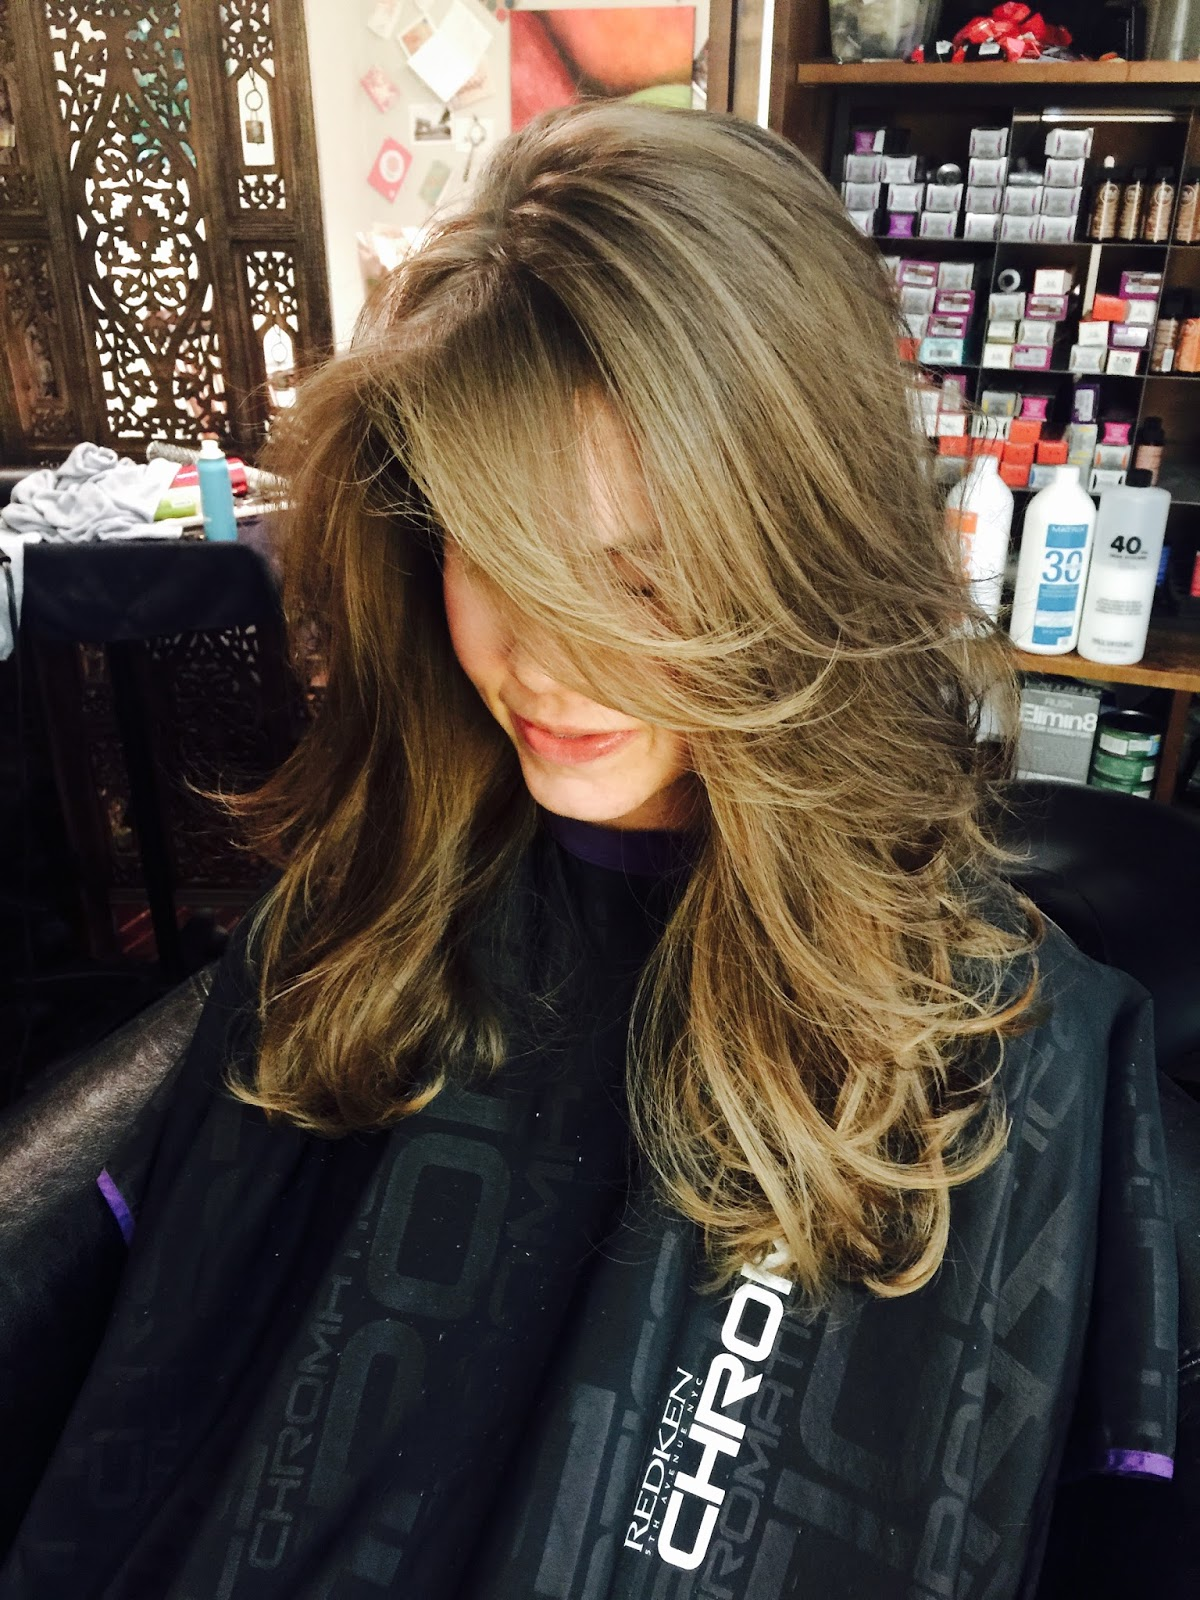 Salon Sovay Layered Haircut In Austin With Sovay Reeder